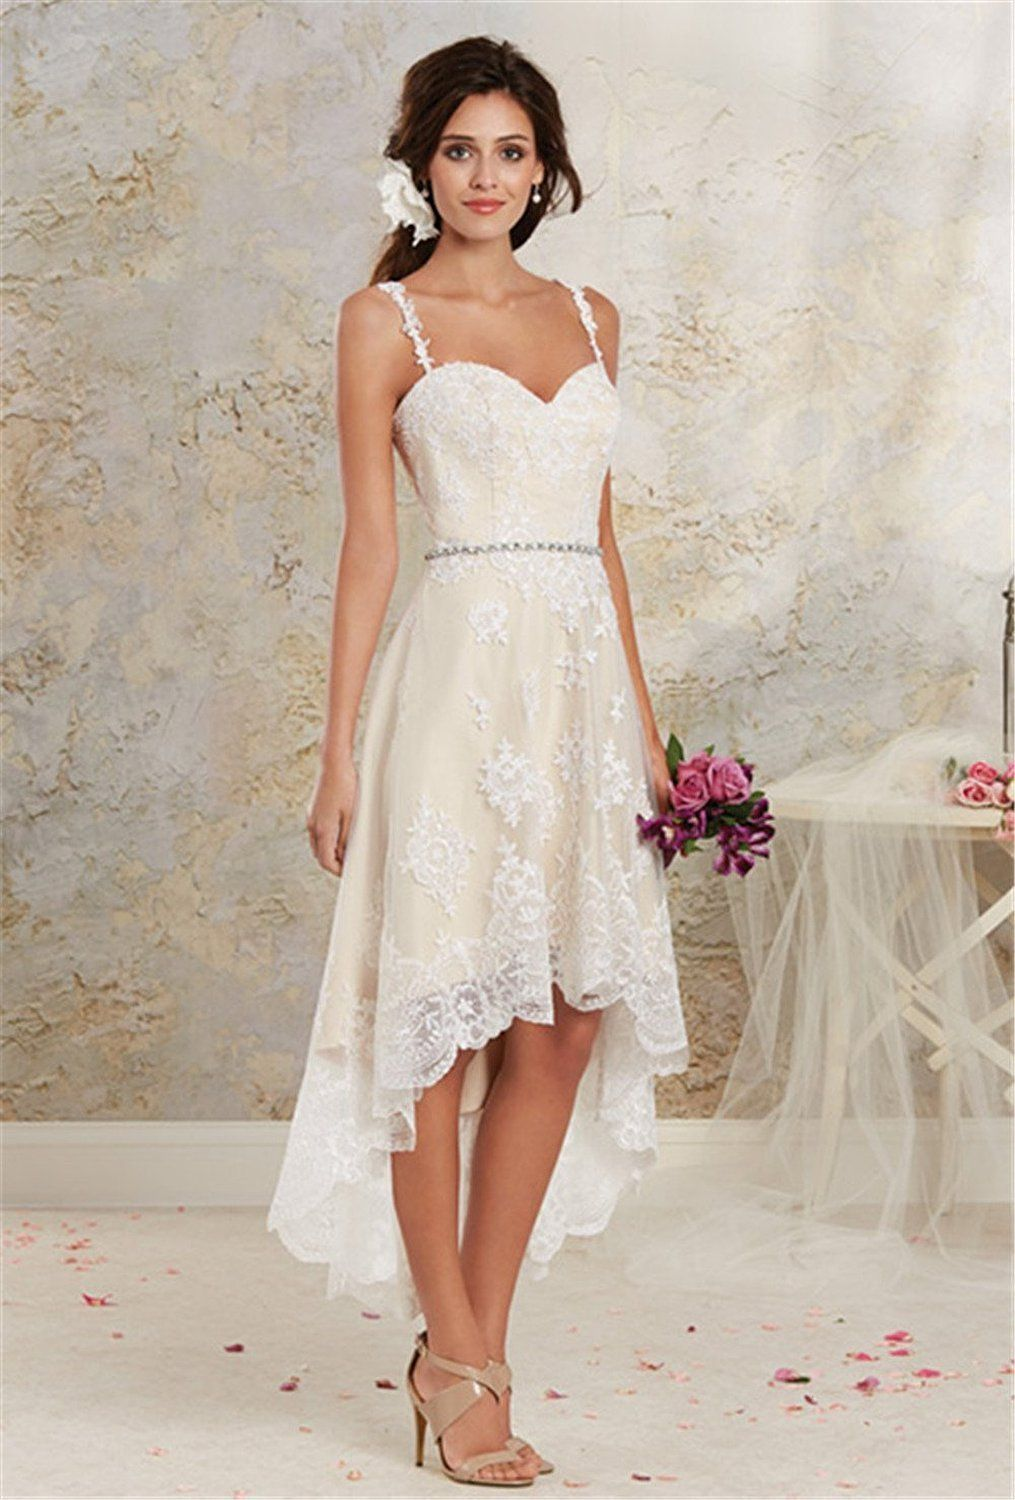 2016 Vintage High Low Country Wedding Dresses Cheap New Sexy Spaghetti Lace  Tea length Short Detachable Skirt Bohemian Bridal Gowns Rustic Bridal  Dresses cfe6d0e689a7